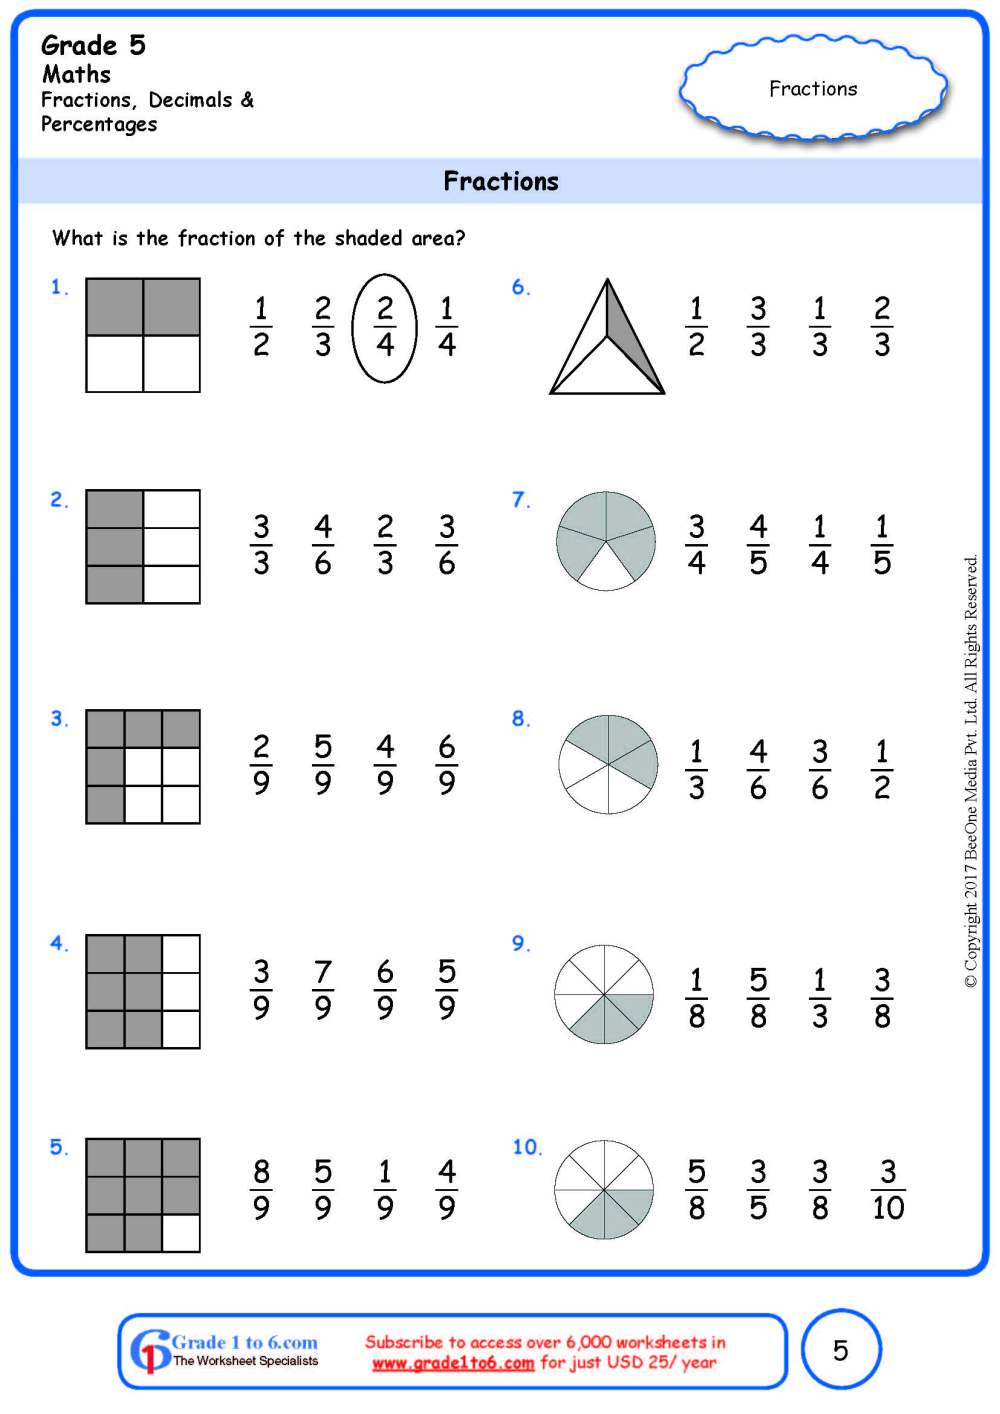 medium resolution of Grade 5 Fraction of Shaded Area Worksheets www.grade1to6.com